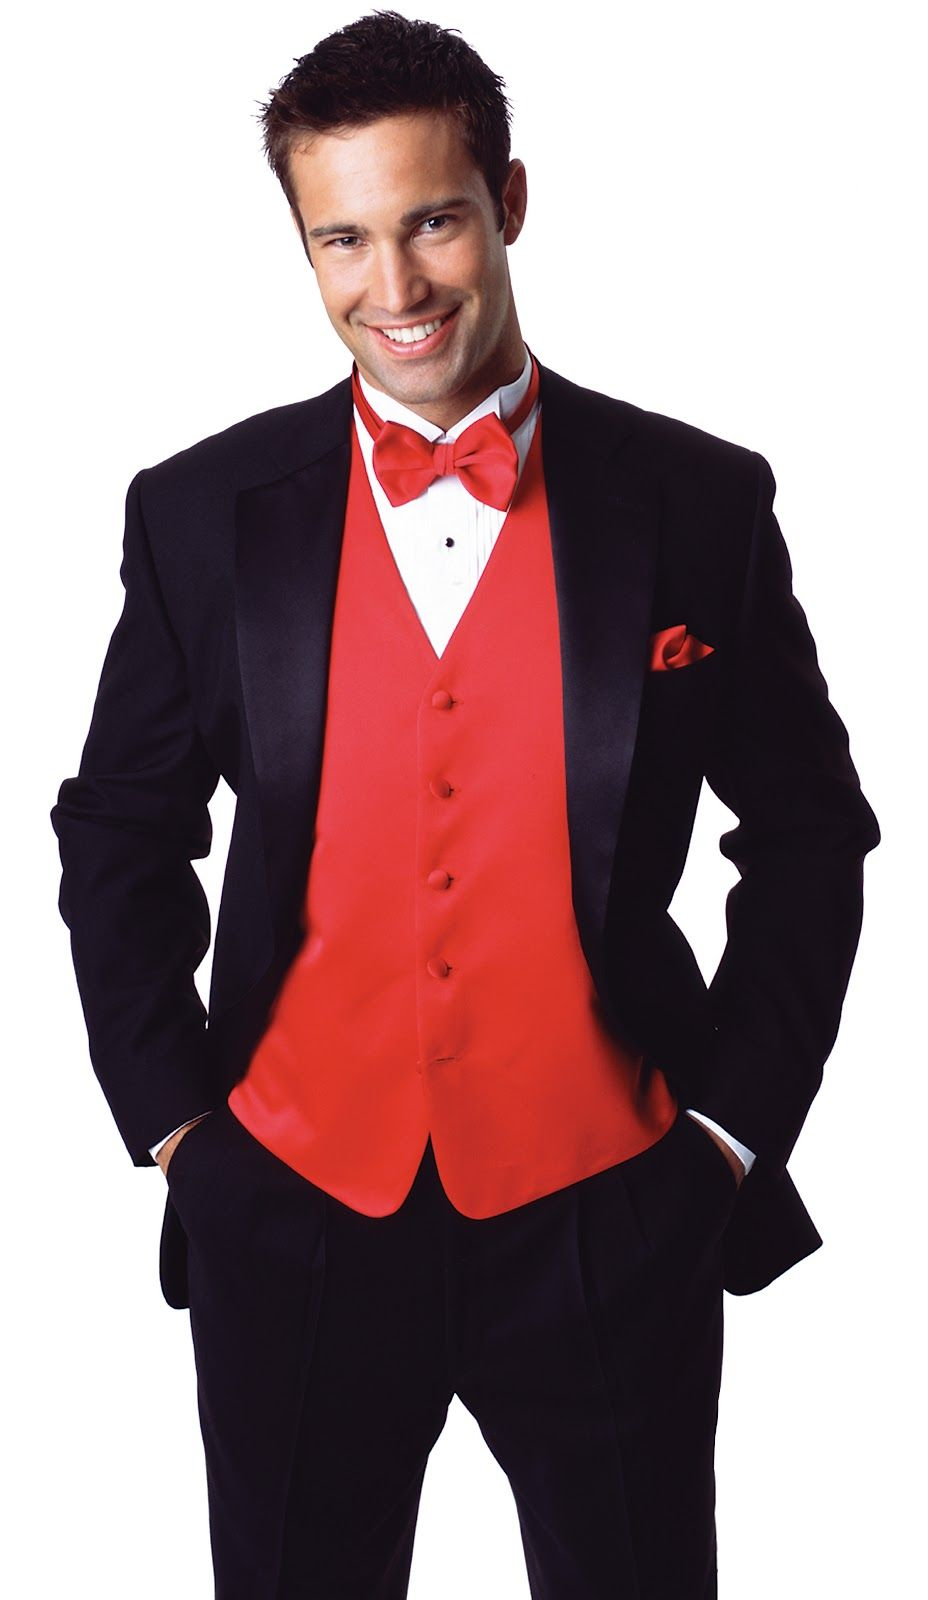 Cherry-Dark-Red-Tuxedo-Vest-Cardi-Formal-Jackets.jpg (928×1600 ...